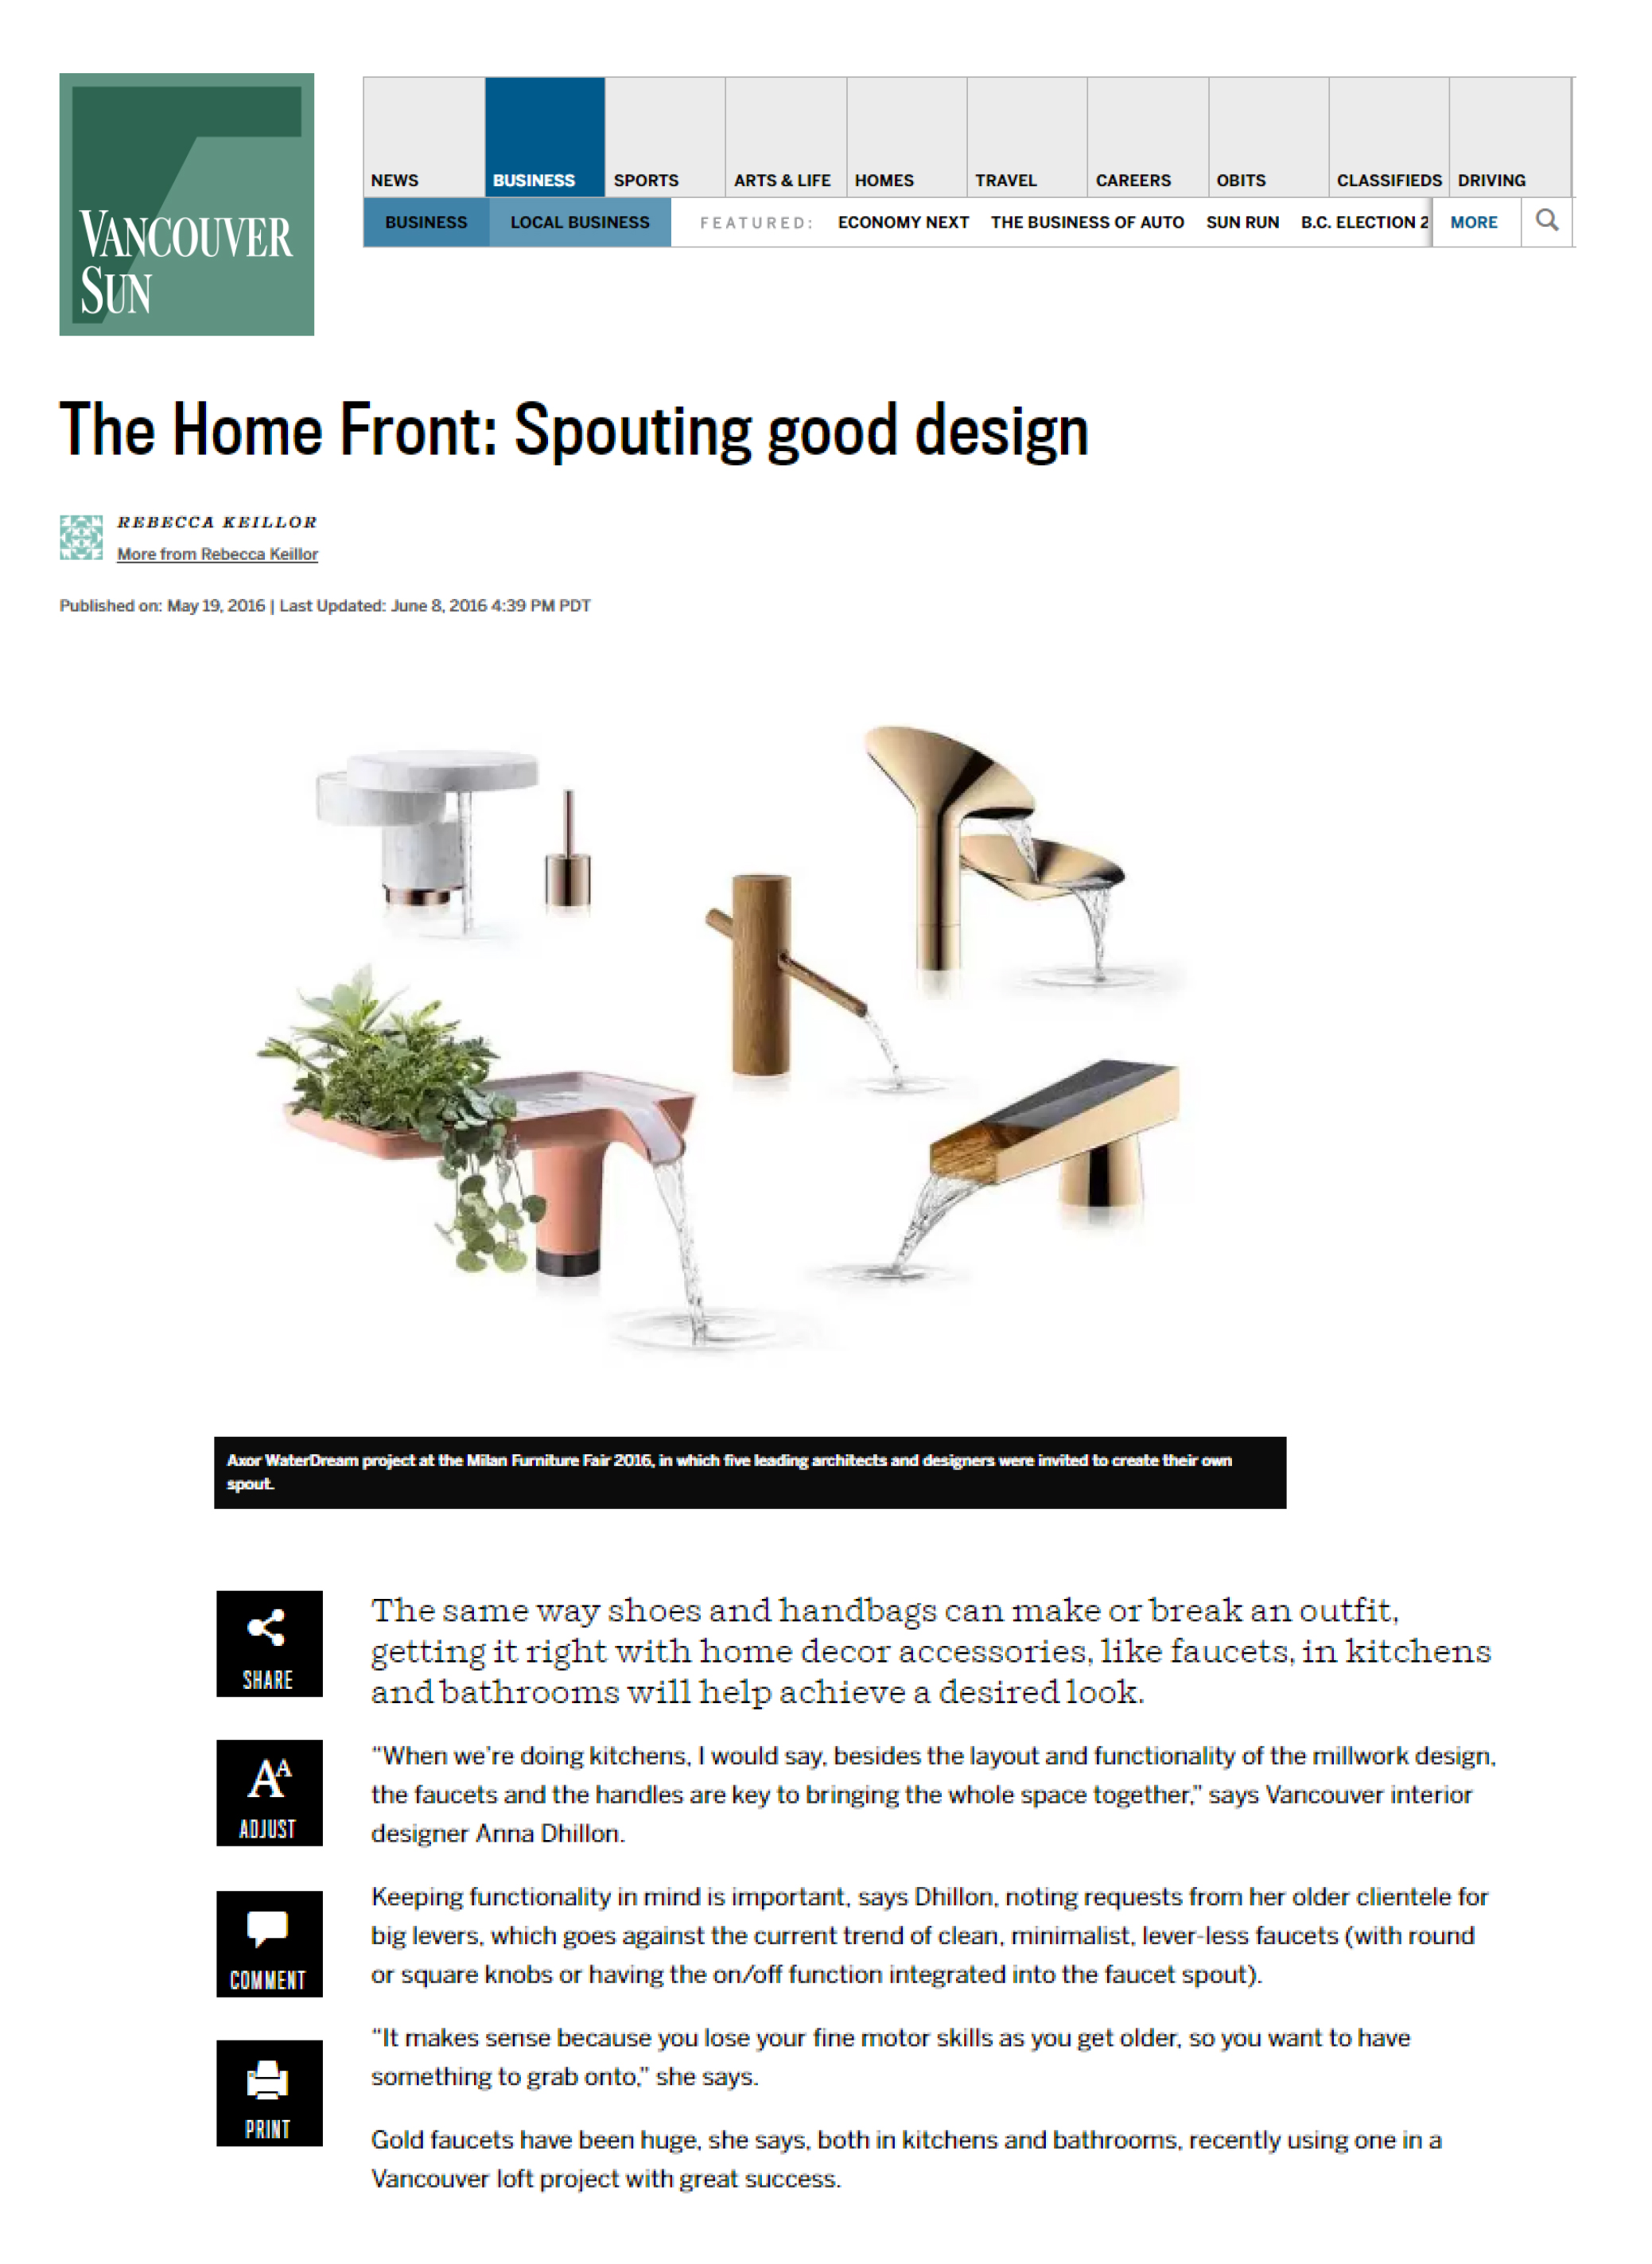 16_05-VS-The_Home_Front-Spouting_Good_Design.jpg